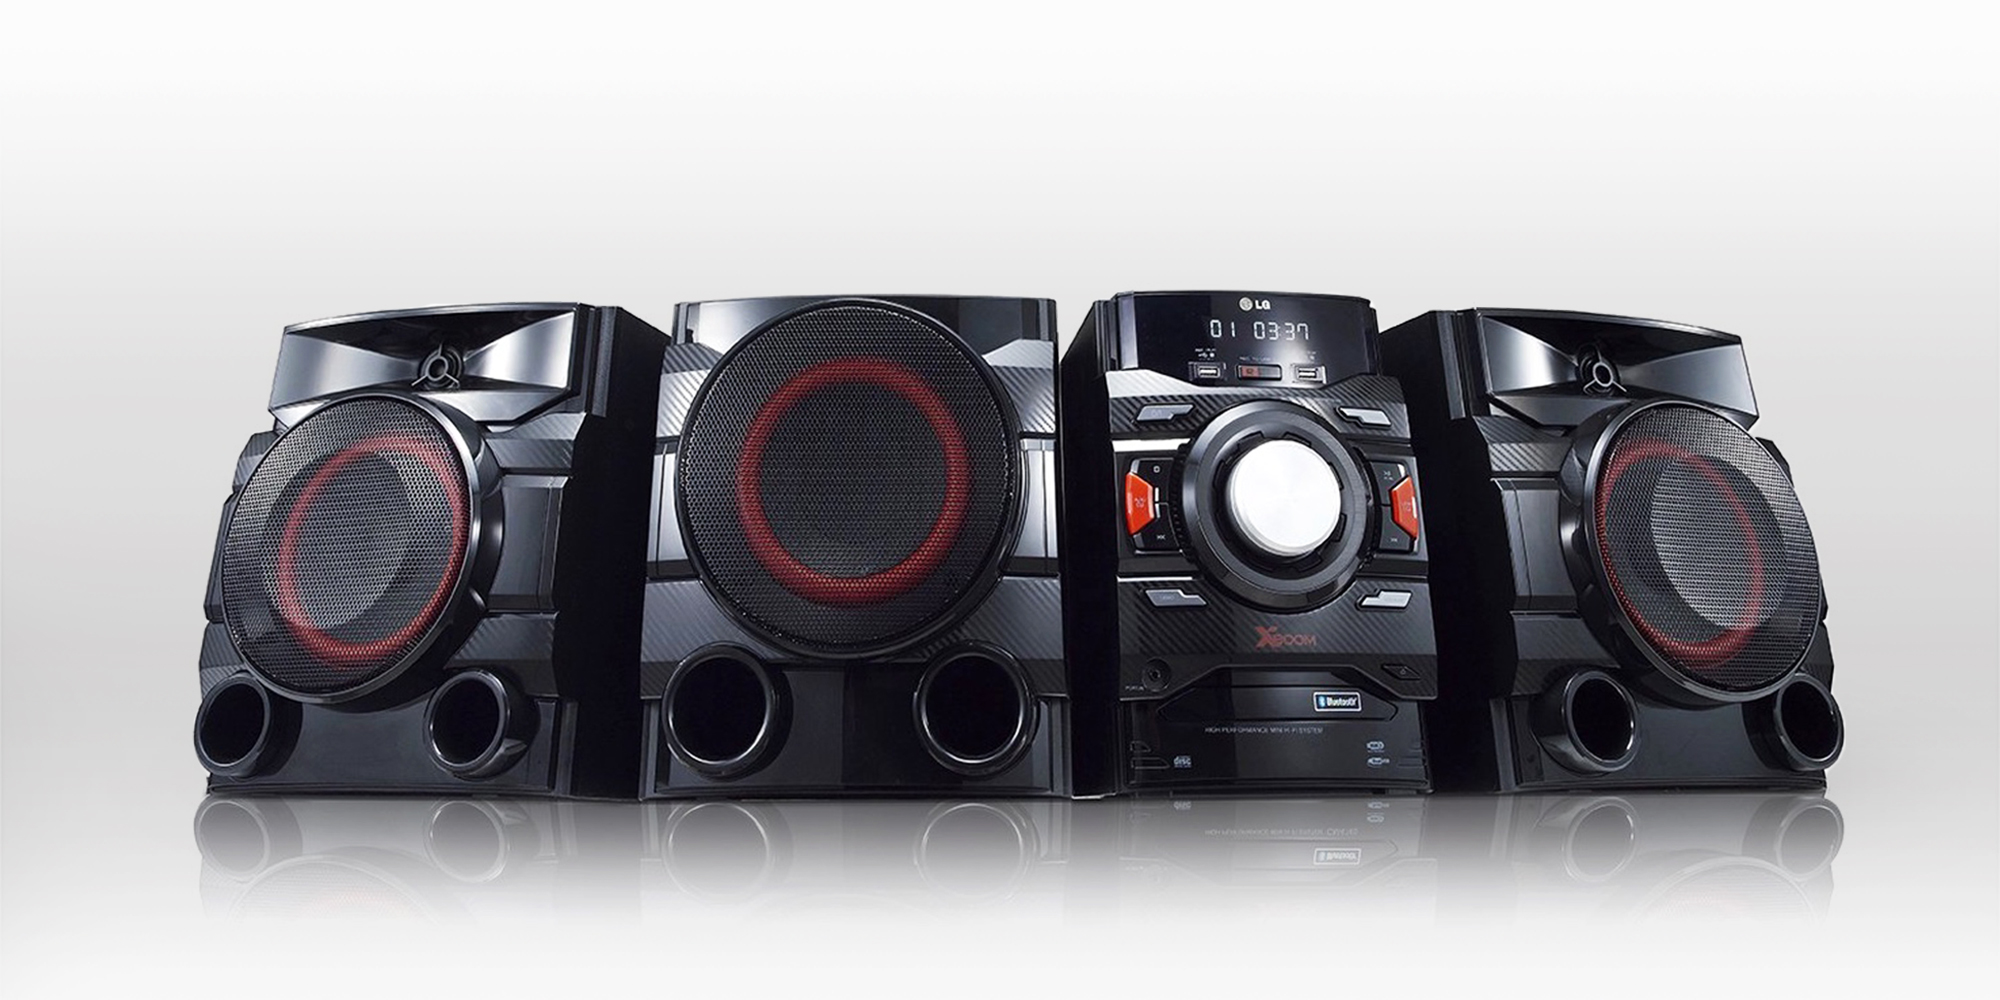 Best Shelf Stereo Systems 28 Images The 9 Best Shelf Stereo Systems Trifty The 9 Best Shelf